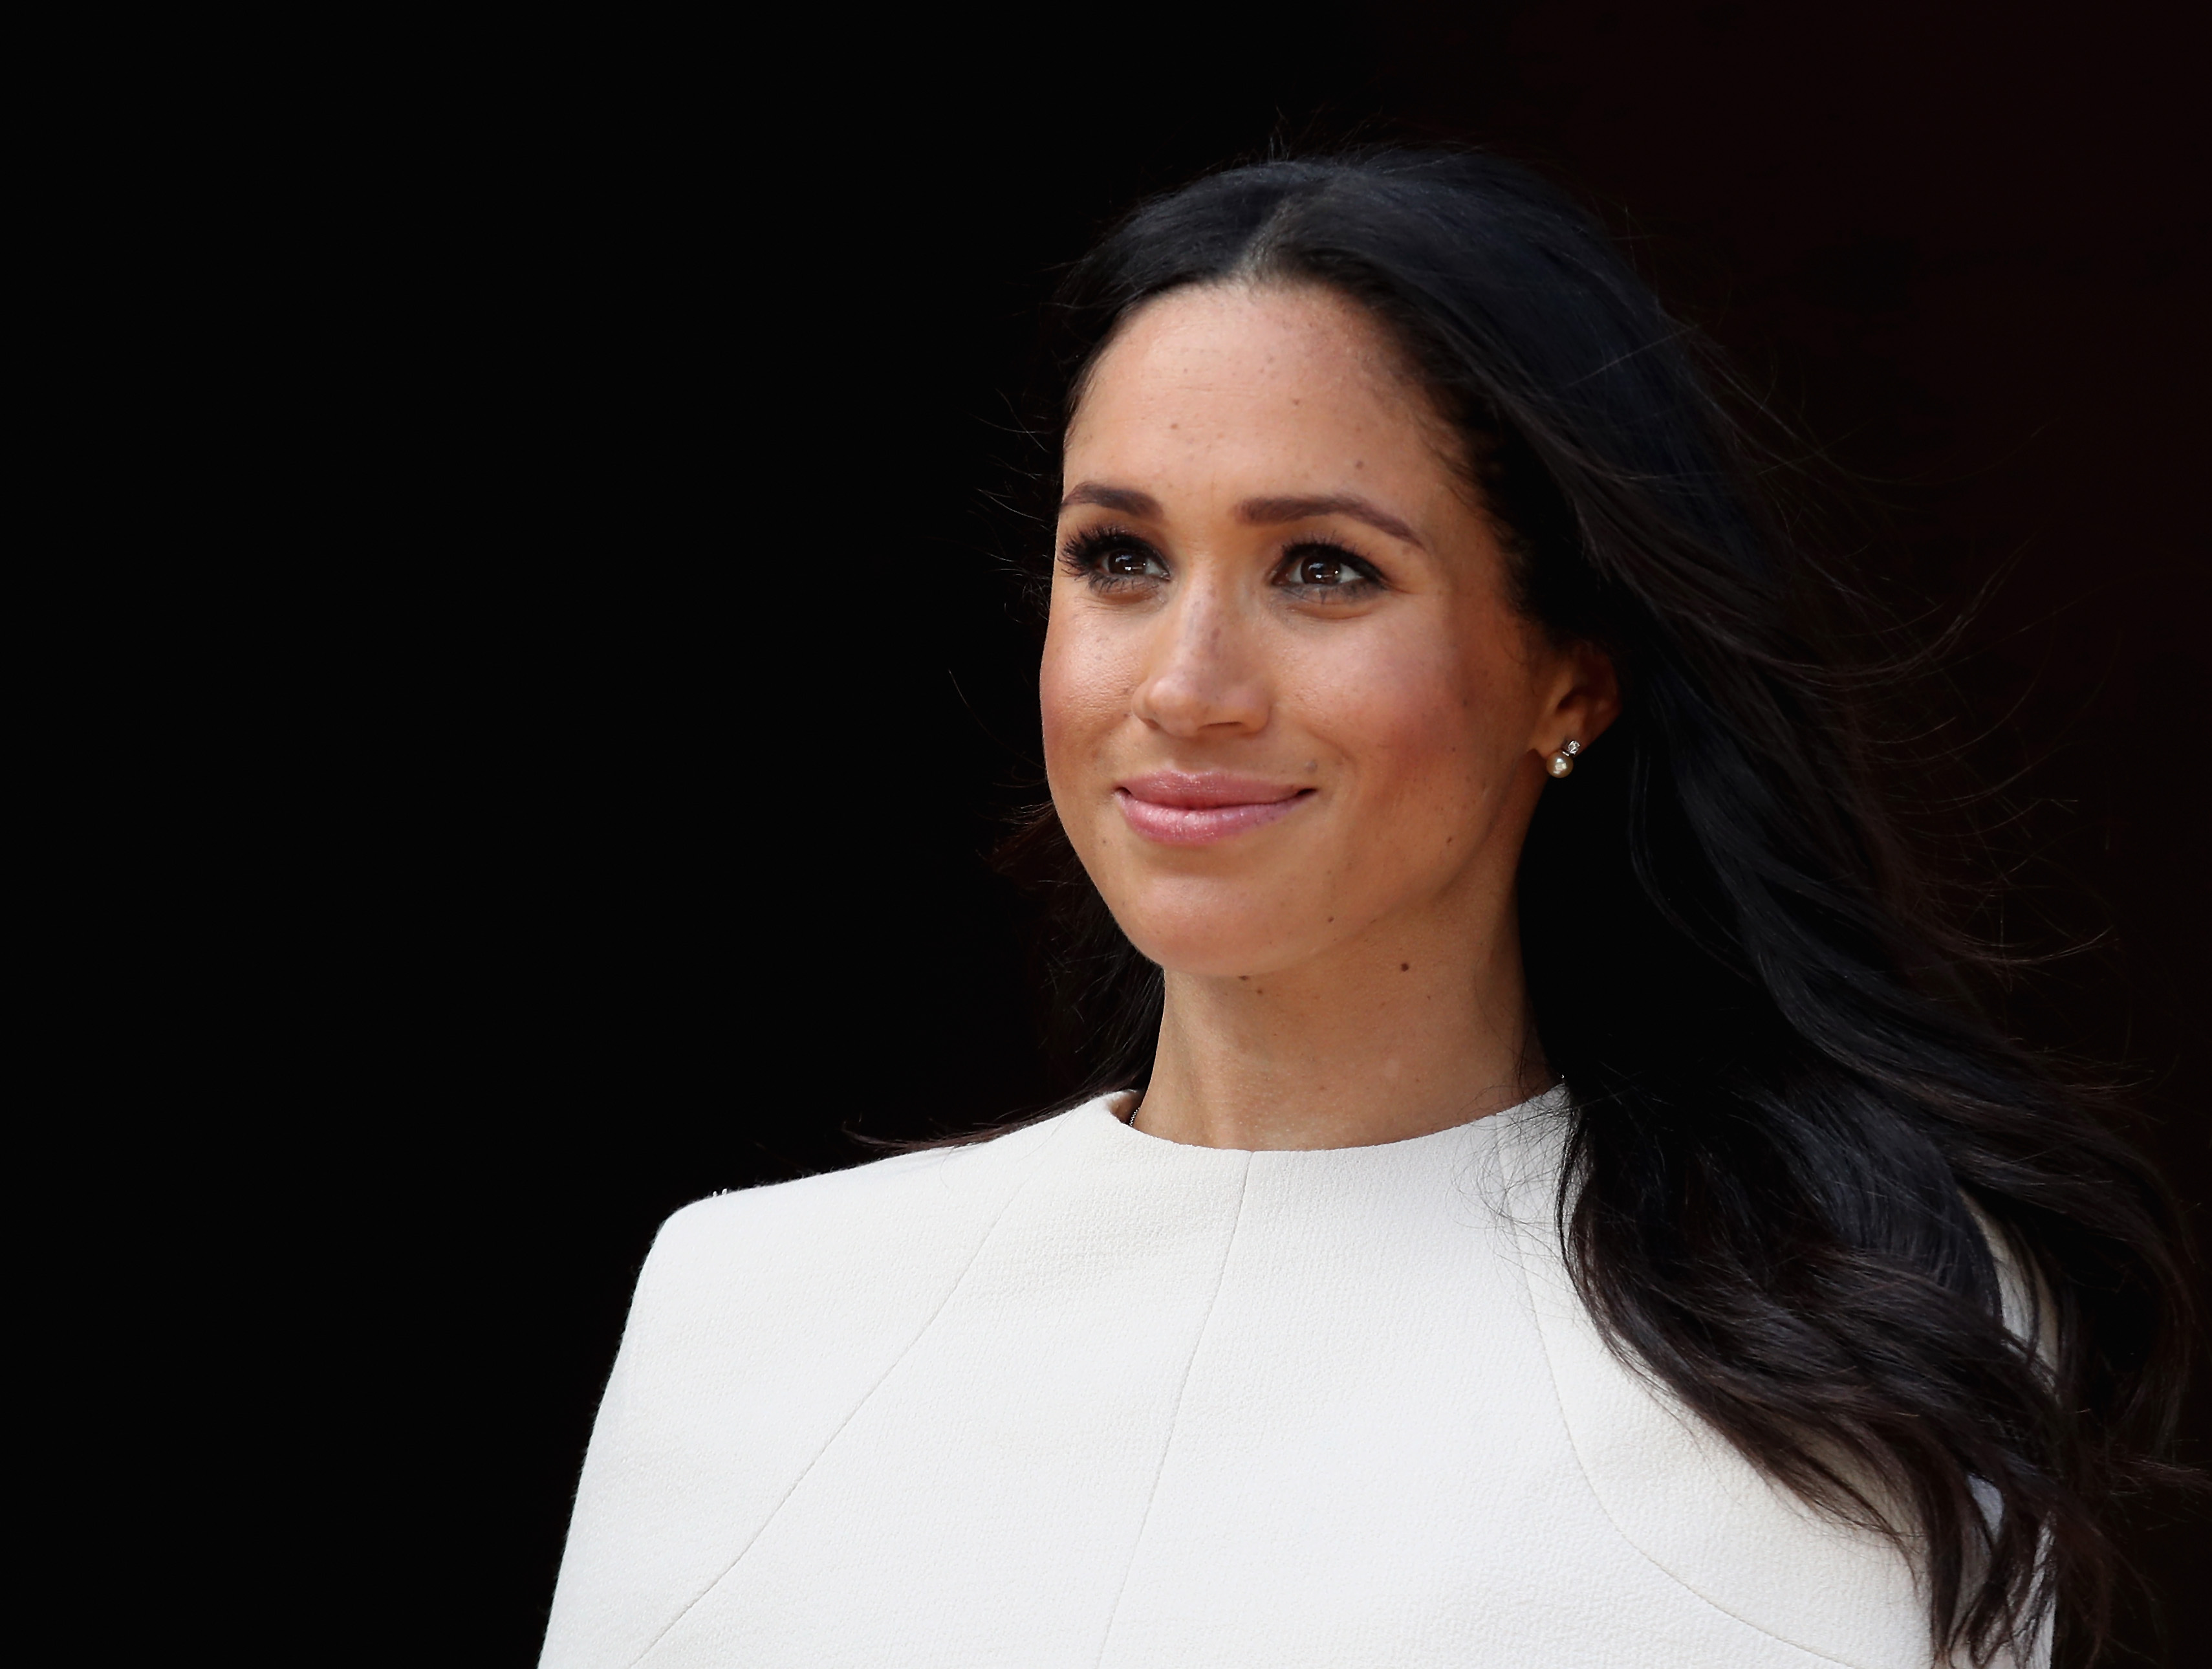 Pictures Meghan Markle nude photos 2019